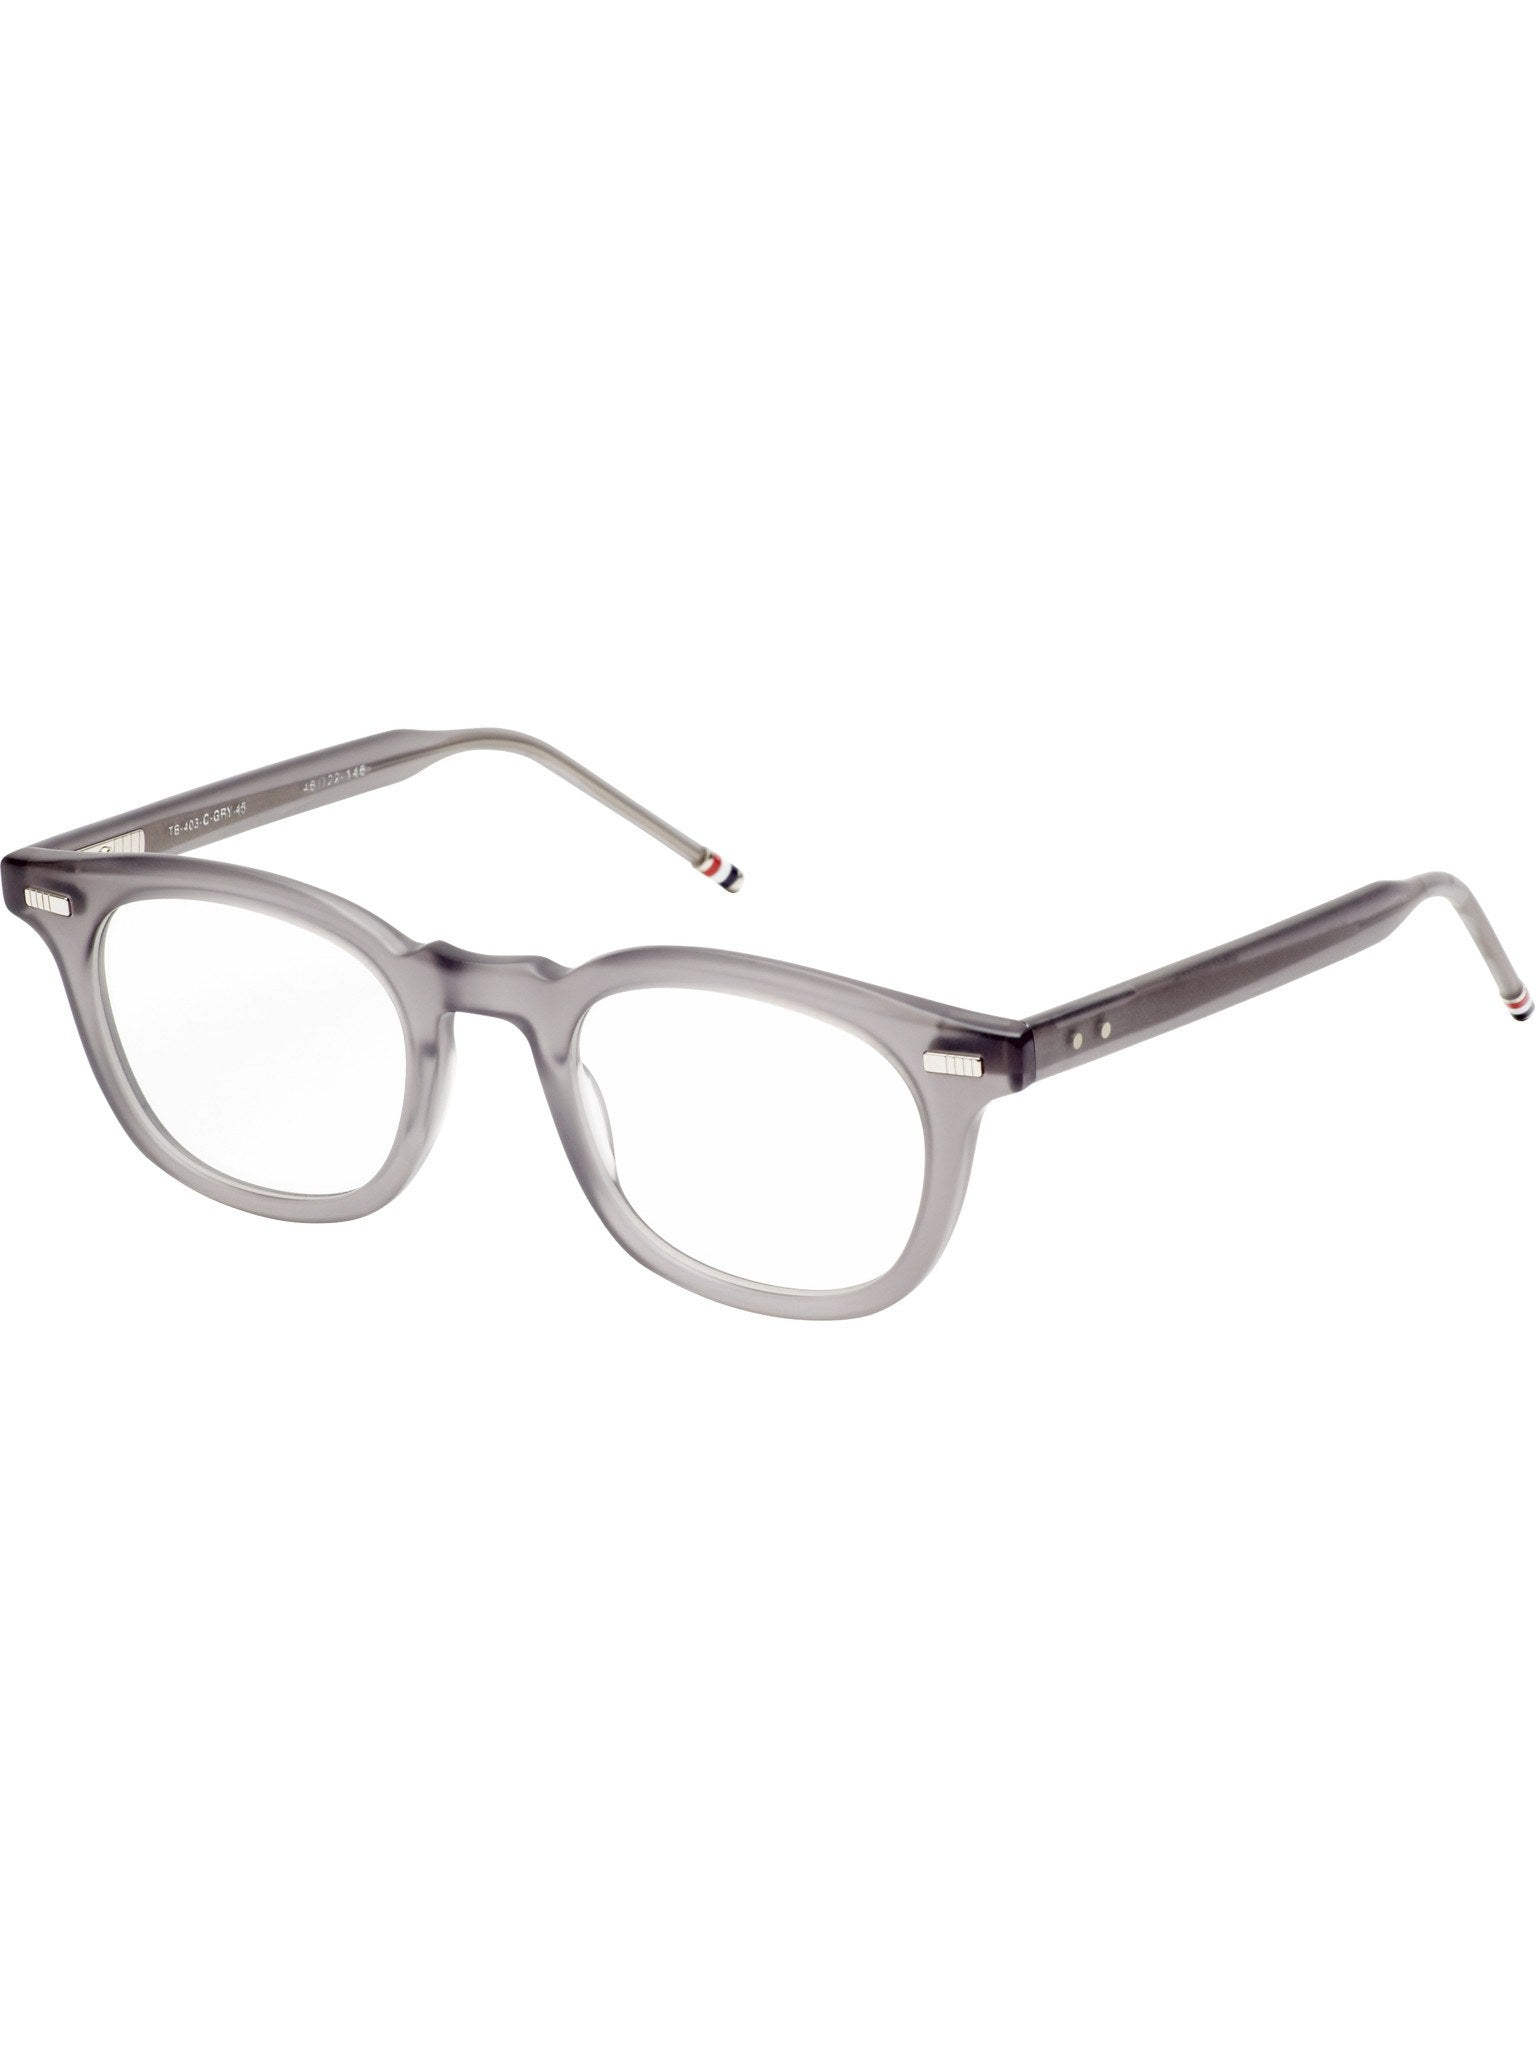 Thom Browne Tb 403 C Glasses Free Shipping Offer